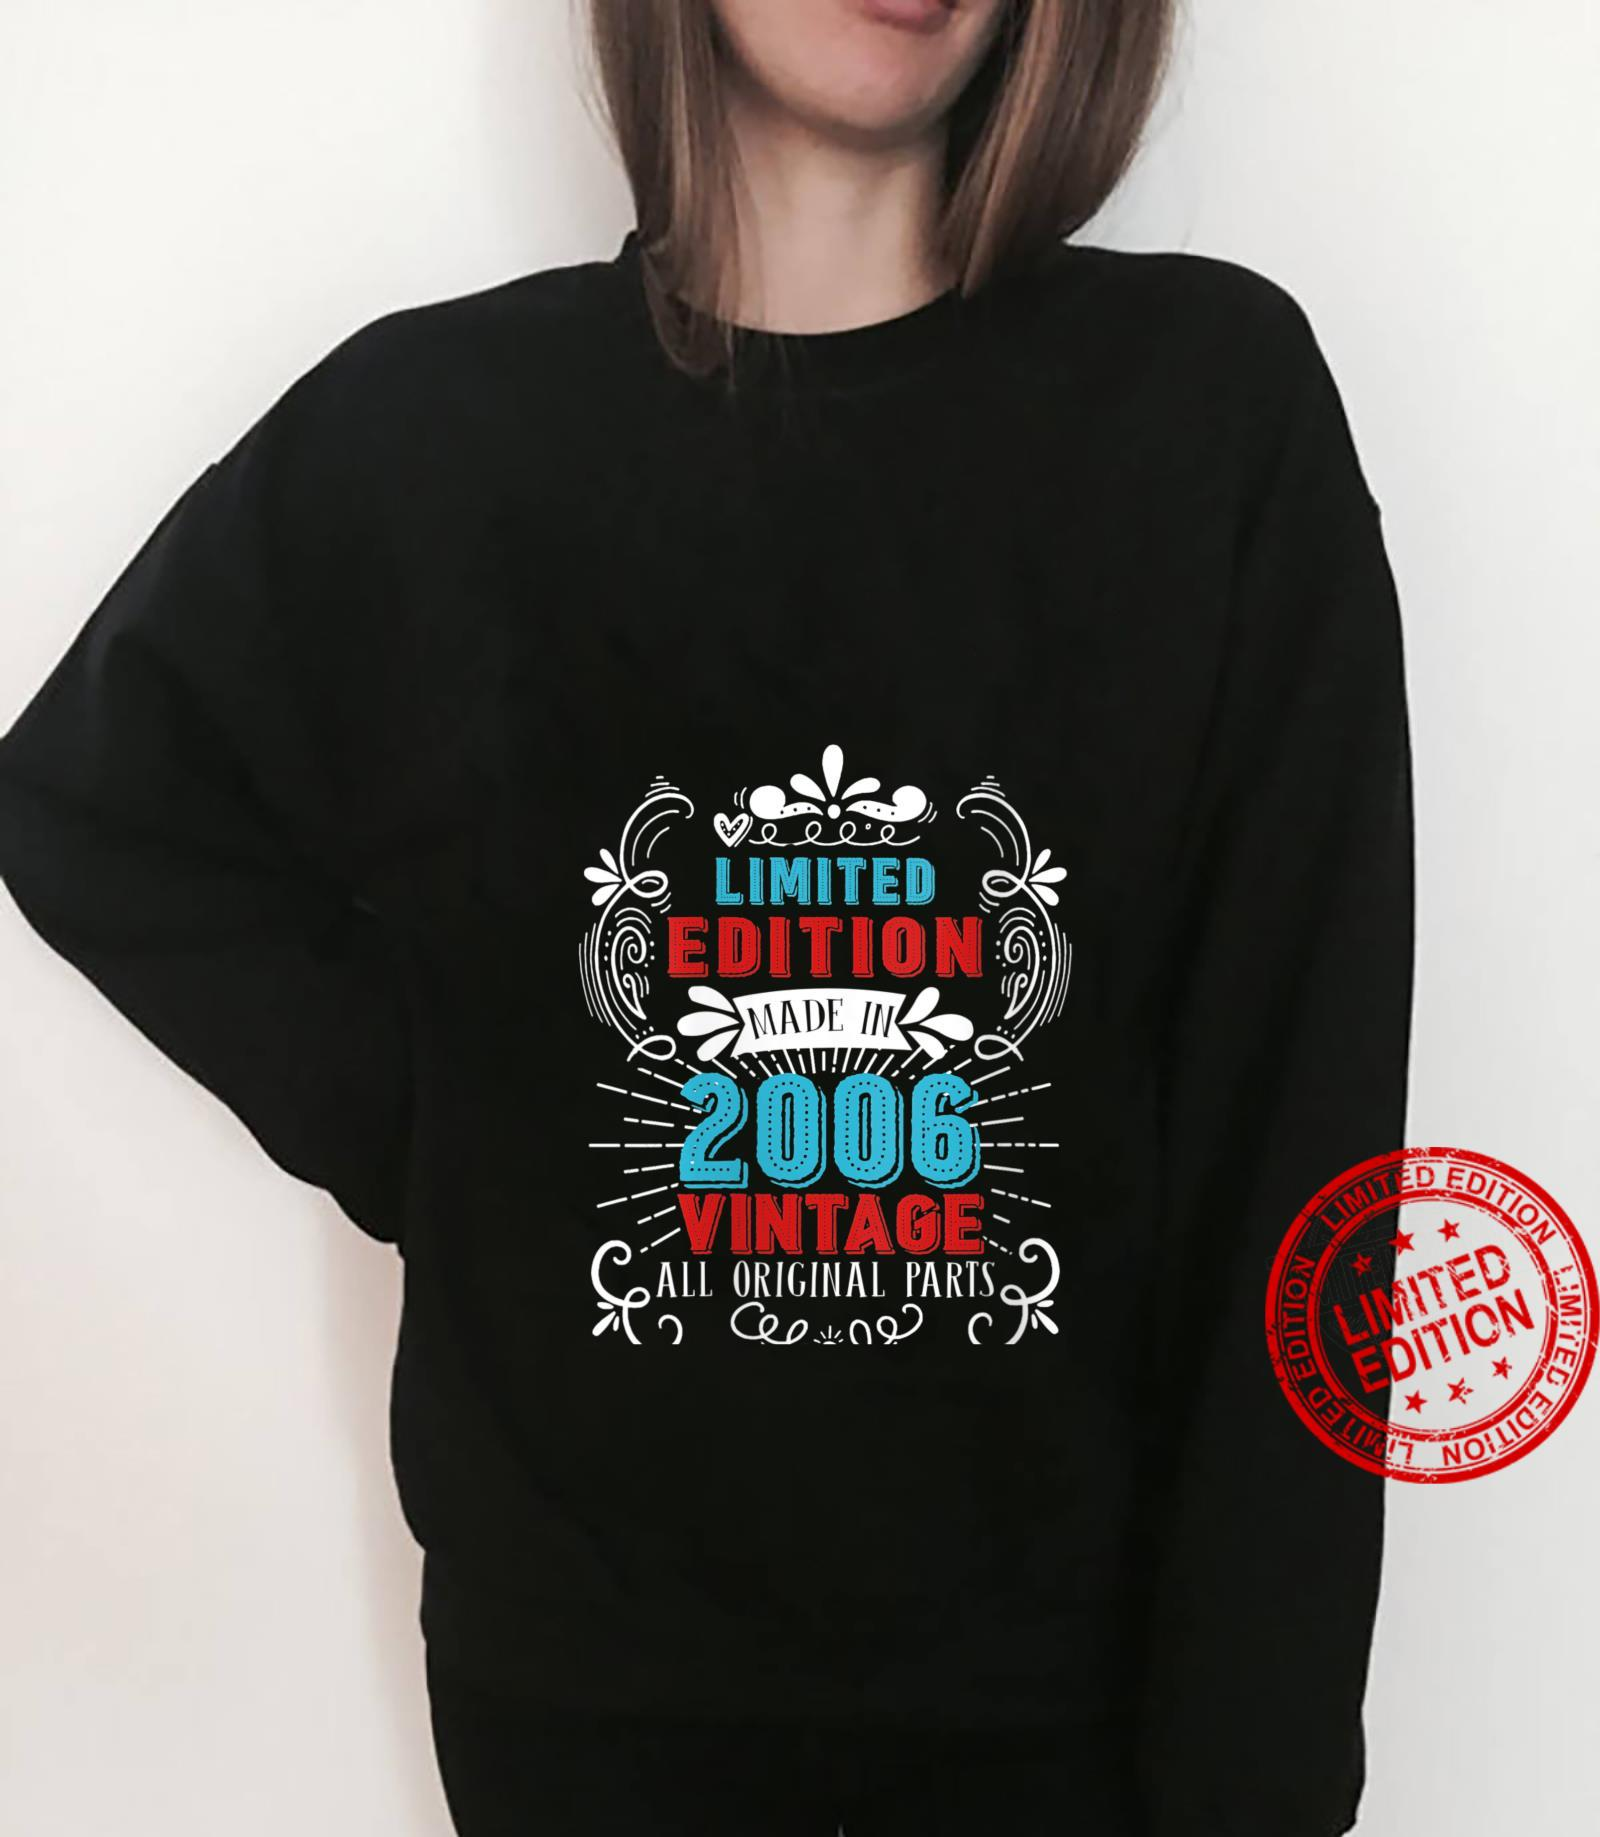 Womens Limited Edition Made in 2006 All Original Parts Vintage Shirt sweater